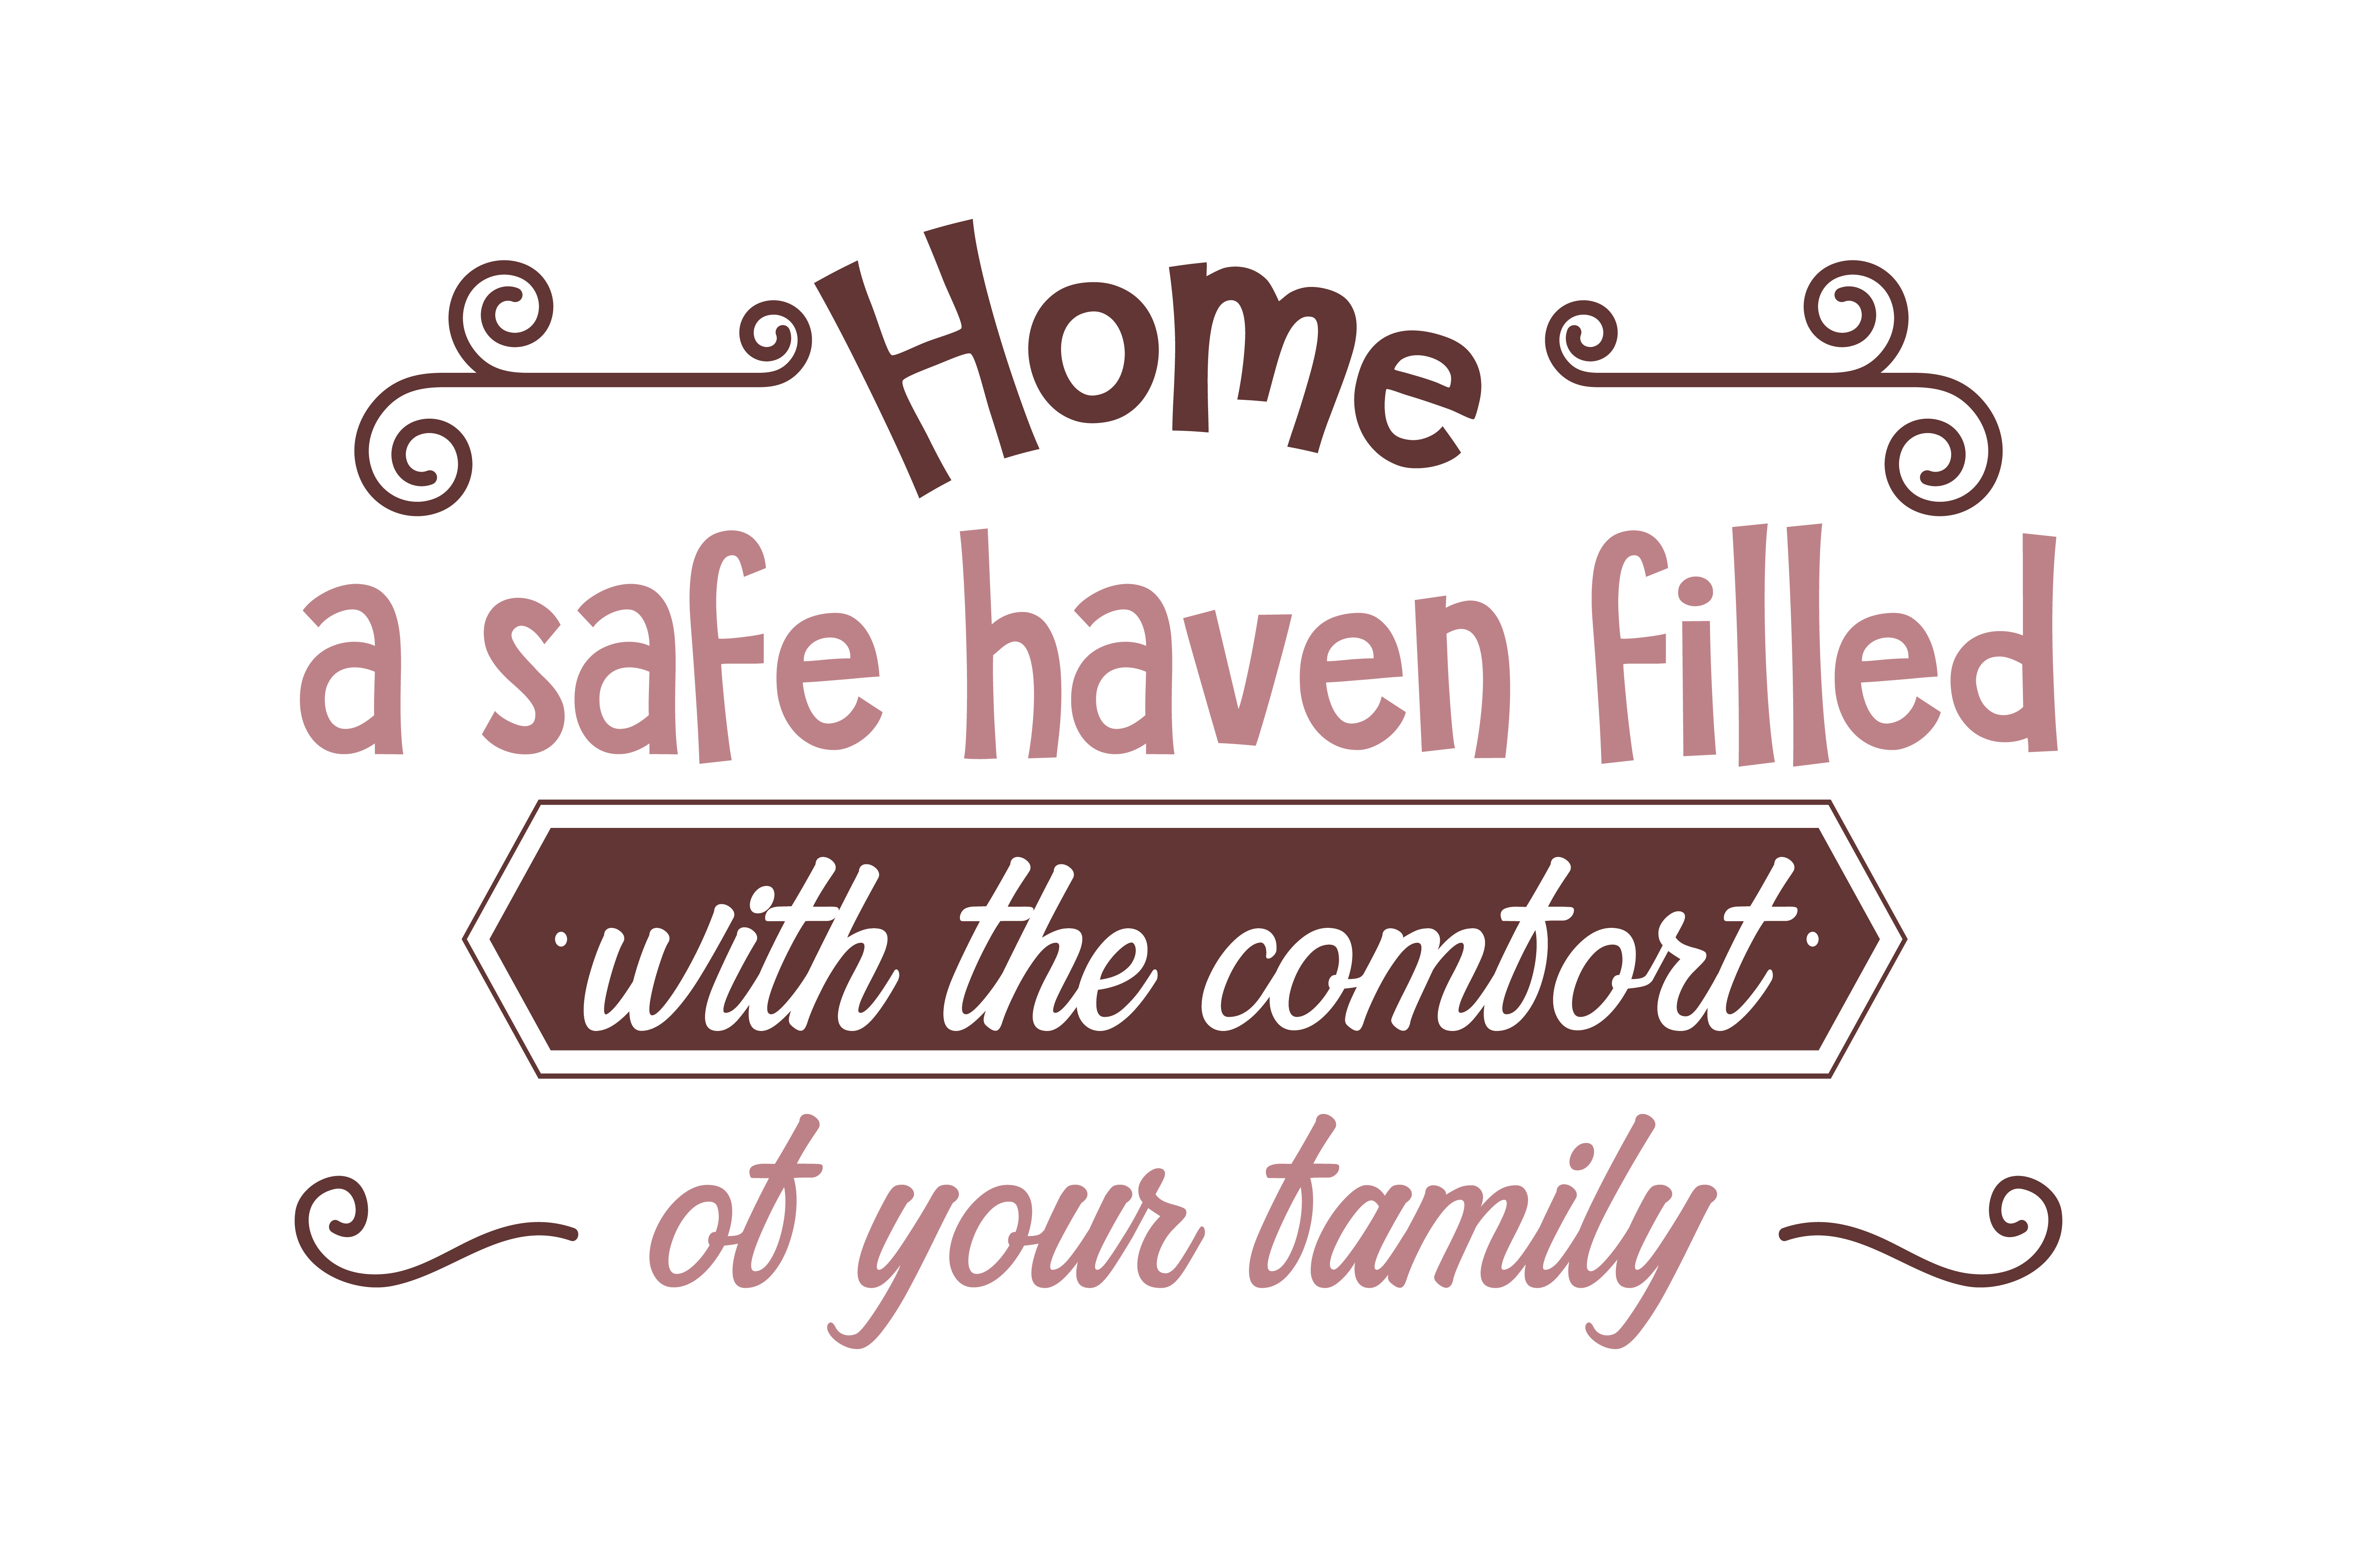 Download Free Home A Safe Haven Filled With The Comfort Of Your Family Quote for Cricut Explore, Silhouette and other cutting machines.